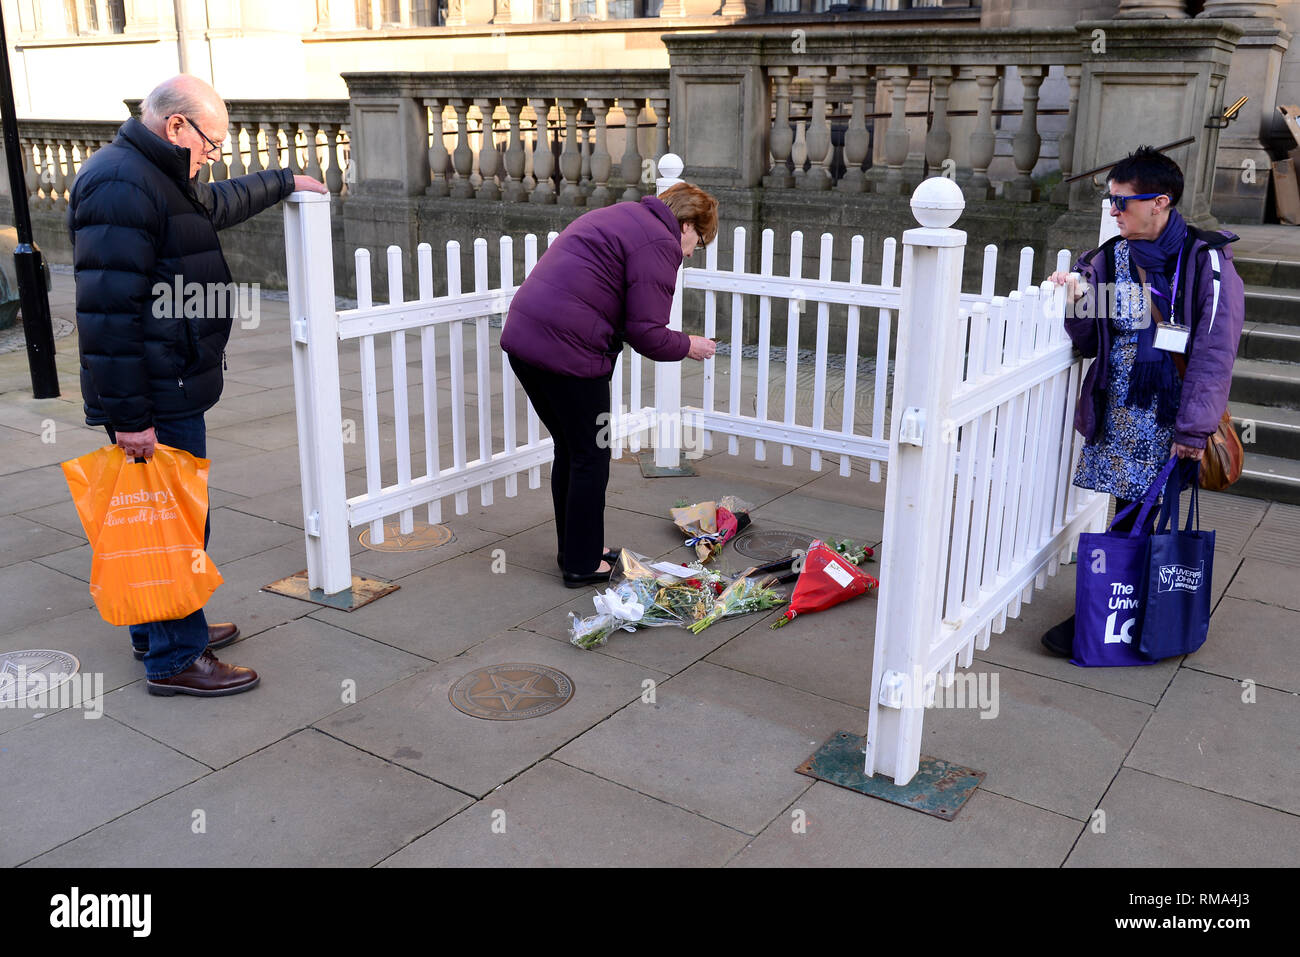 Sheffield, South Yorkshire, UK. 14th February 2019. Flowers and tributes left at the plaque for the late Gordon Banks. Credit: Alamy Live News - Stock Image